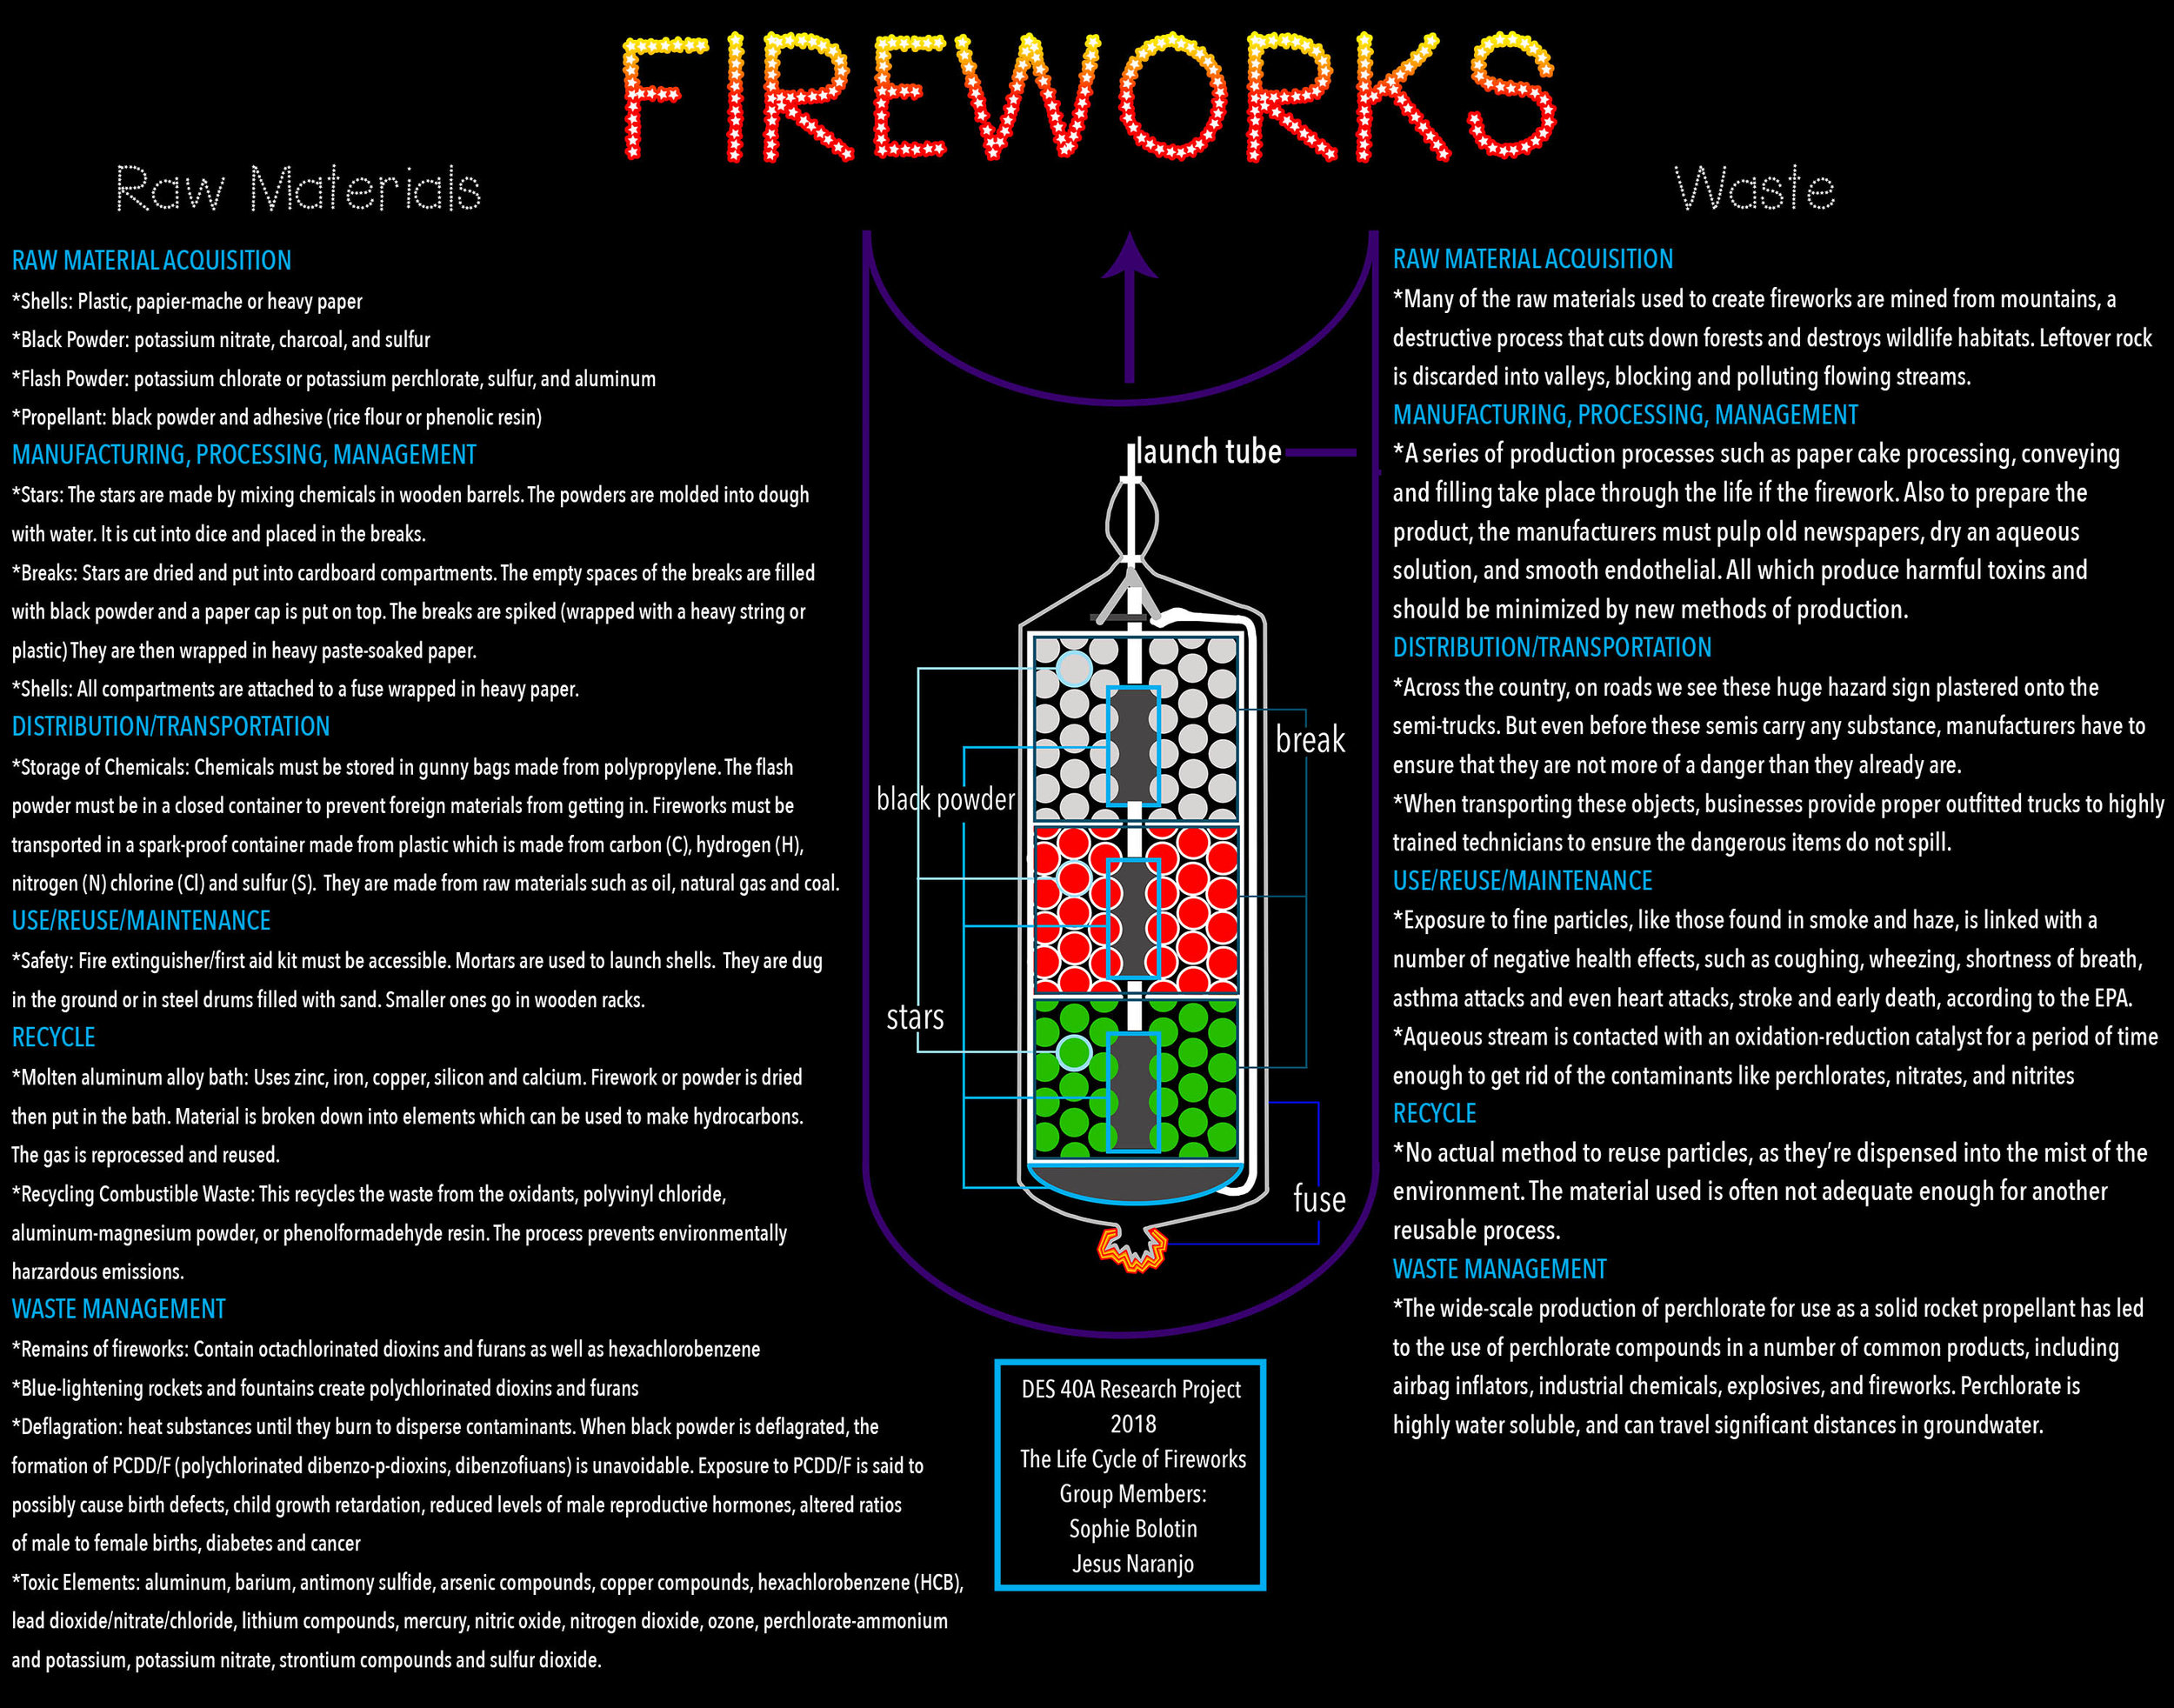 Fireworks — Design Life-CycleDesign Life-Cycle